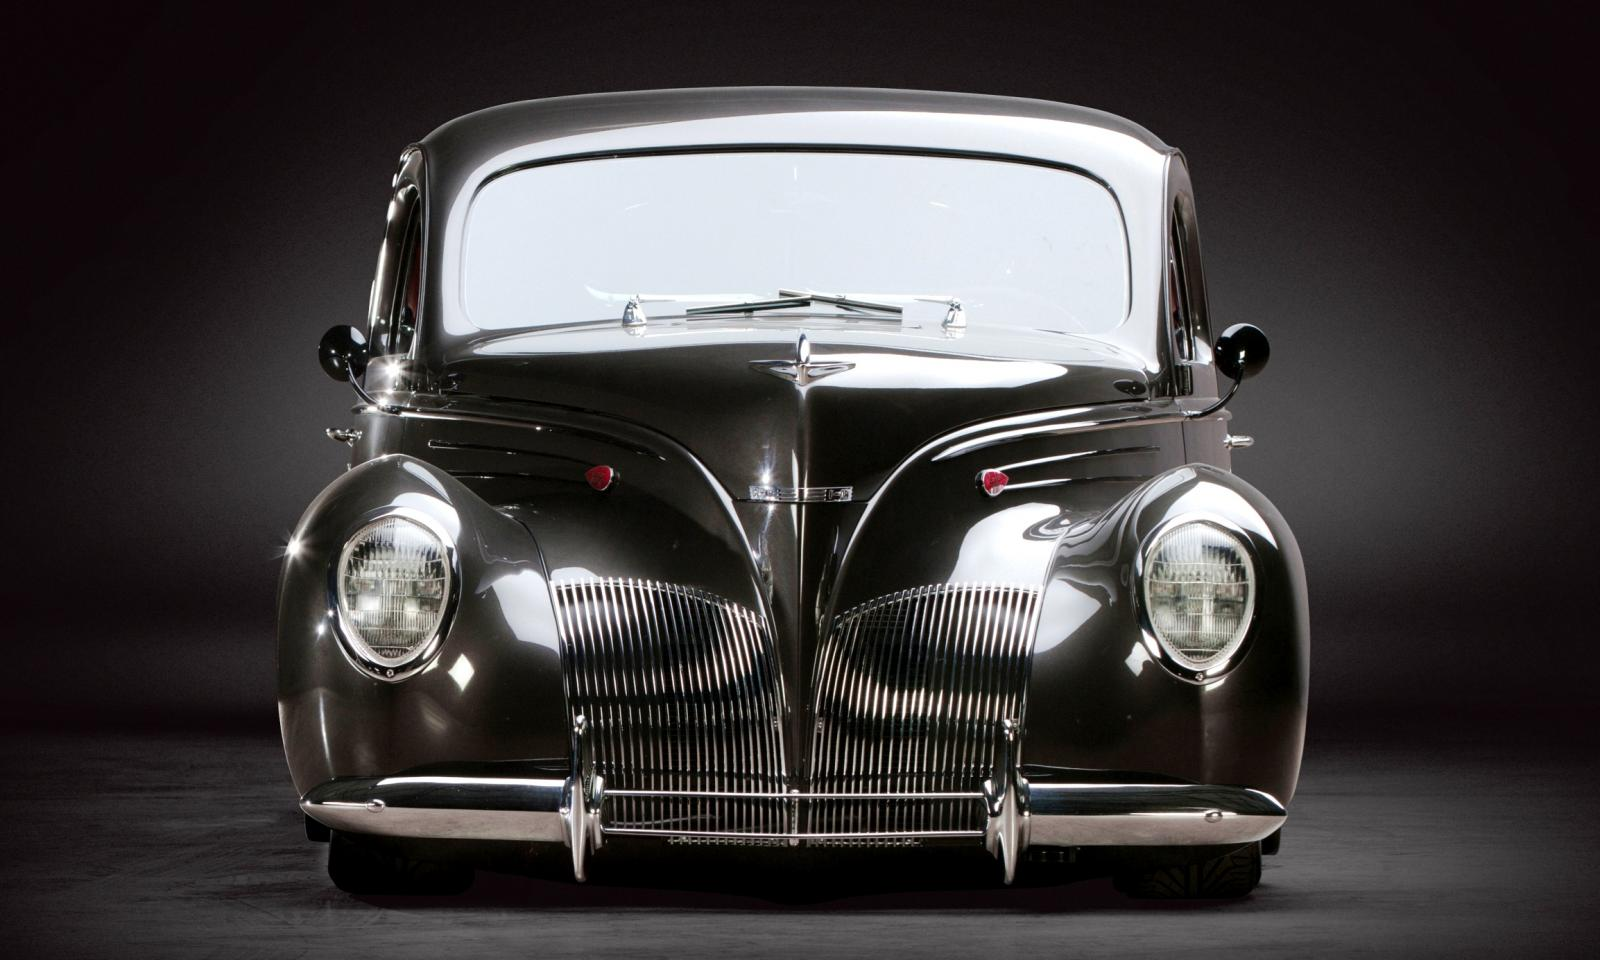 Rm dallas preview 600hp v12 1939 lincoln zephyr coupe 1 for 1939 lincoln zephyr 3 window coupe